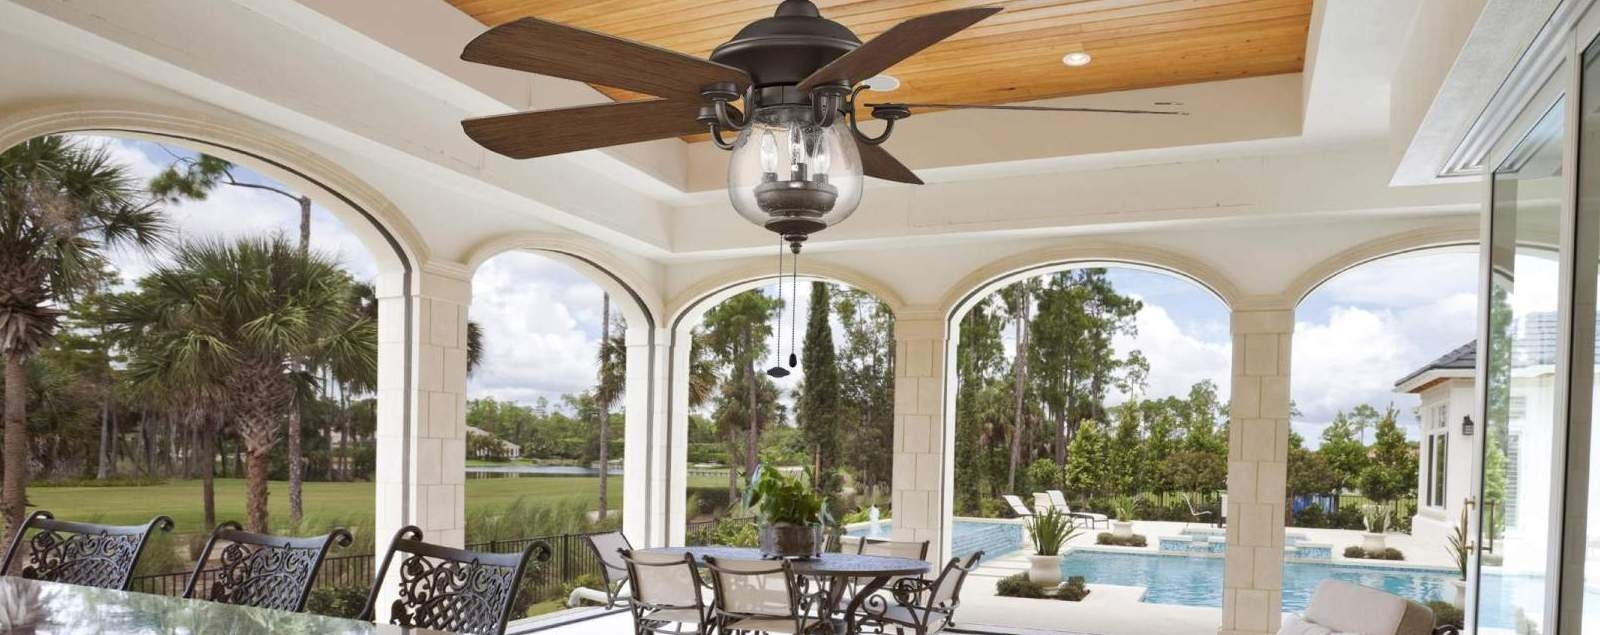 Outdoor Ceiling Fans With Lights Intended For Preferred Outdoor Ceiling Fans – Choose Wet Rated Or Damp Rated For Your Space! (View 11 of 20)